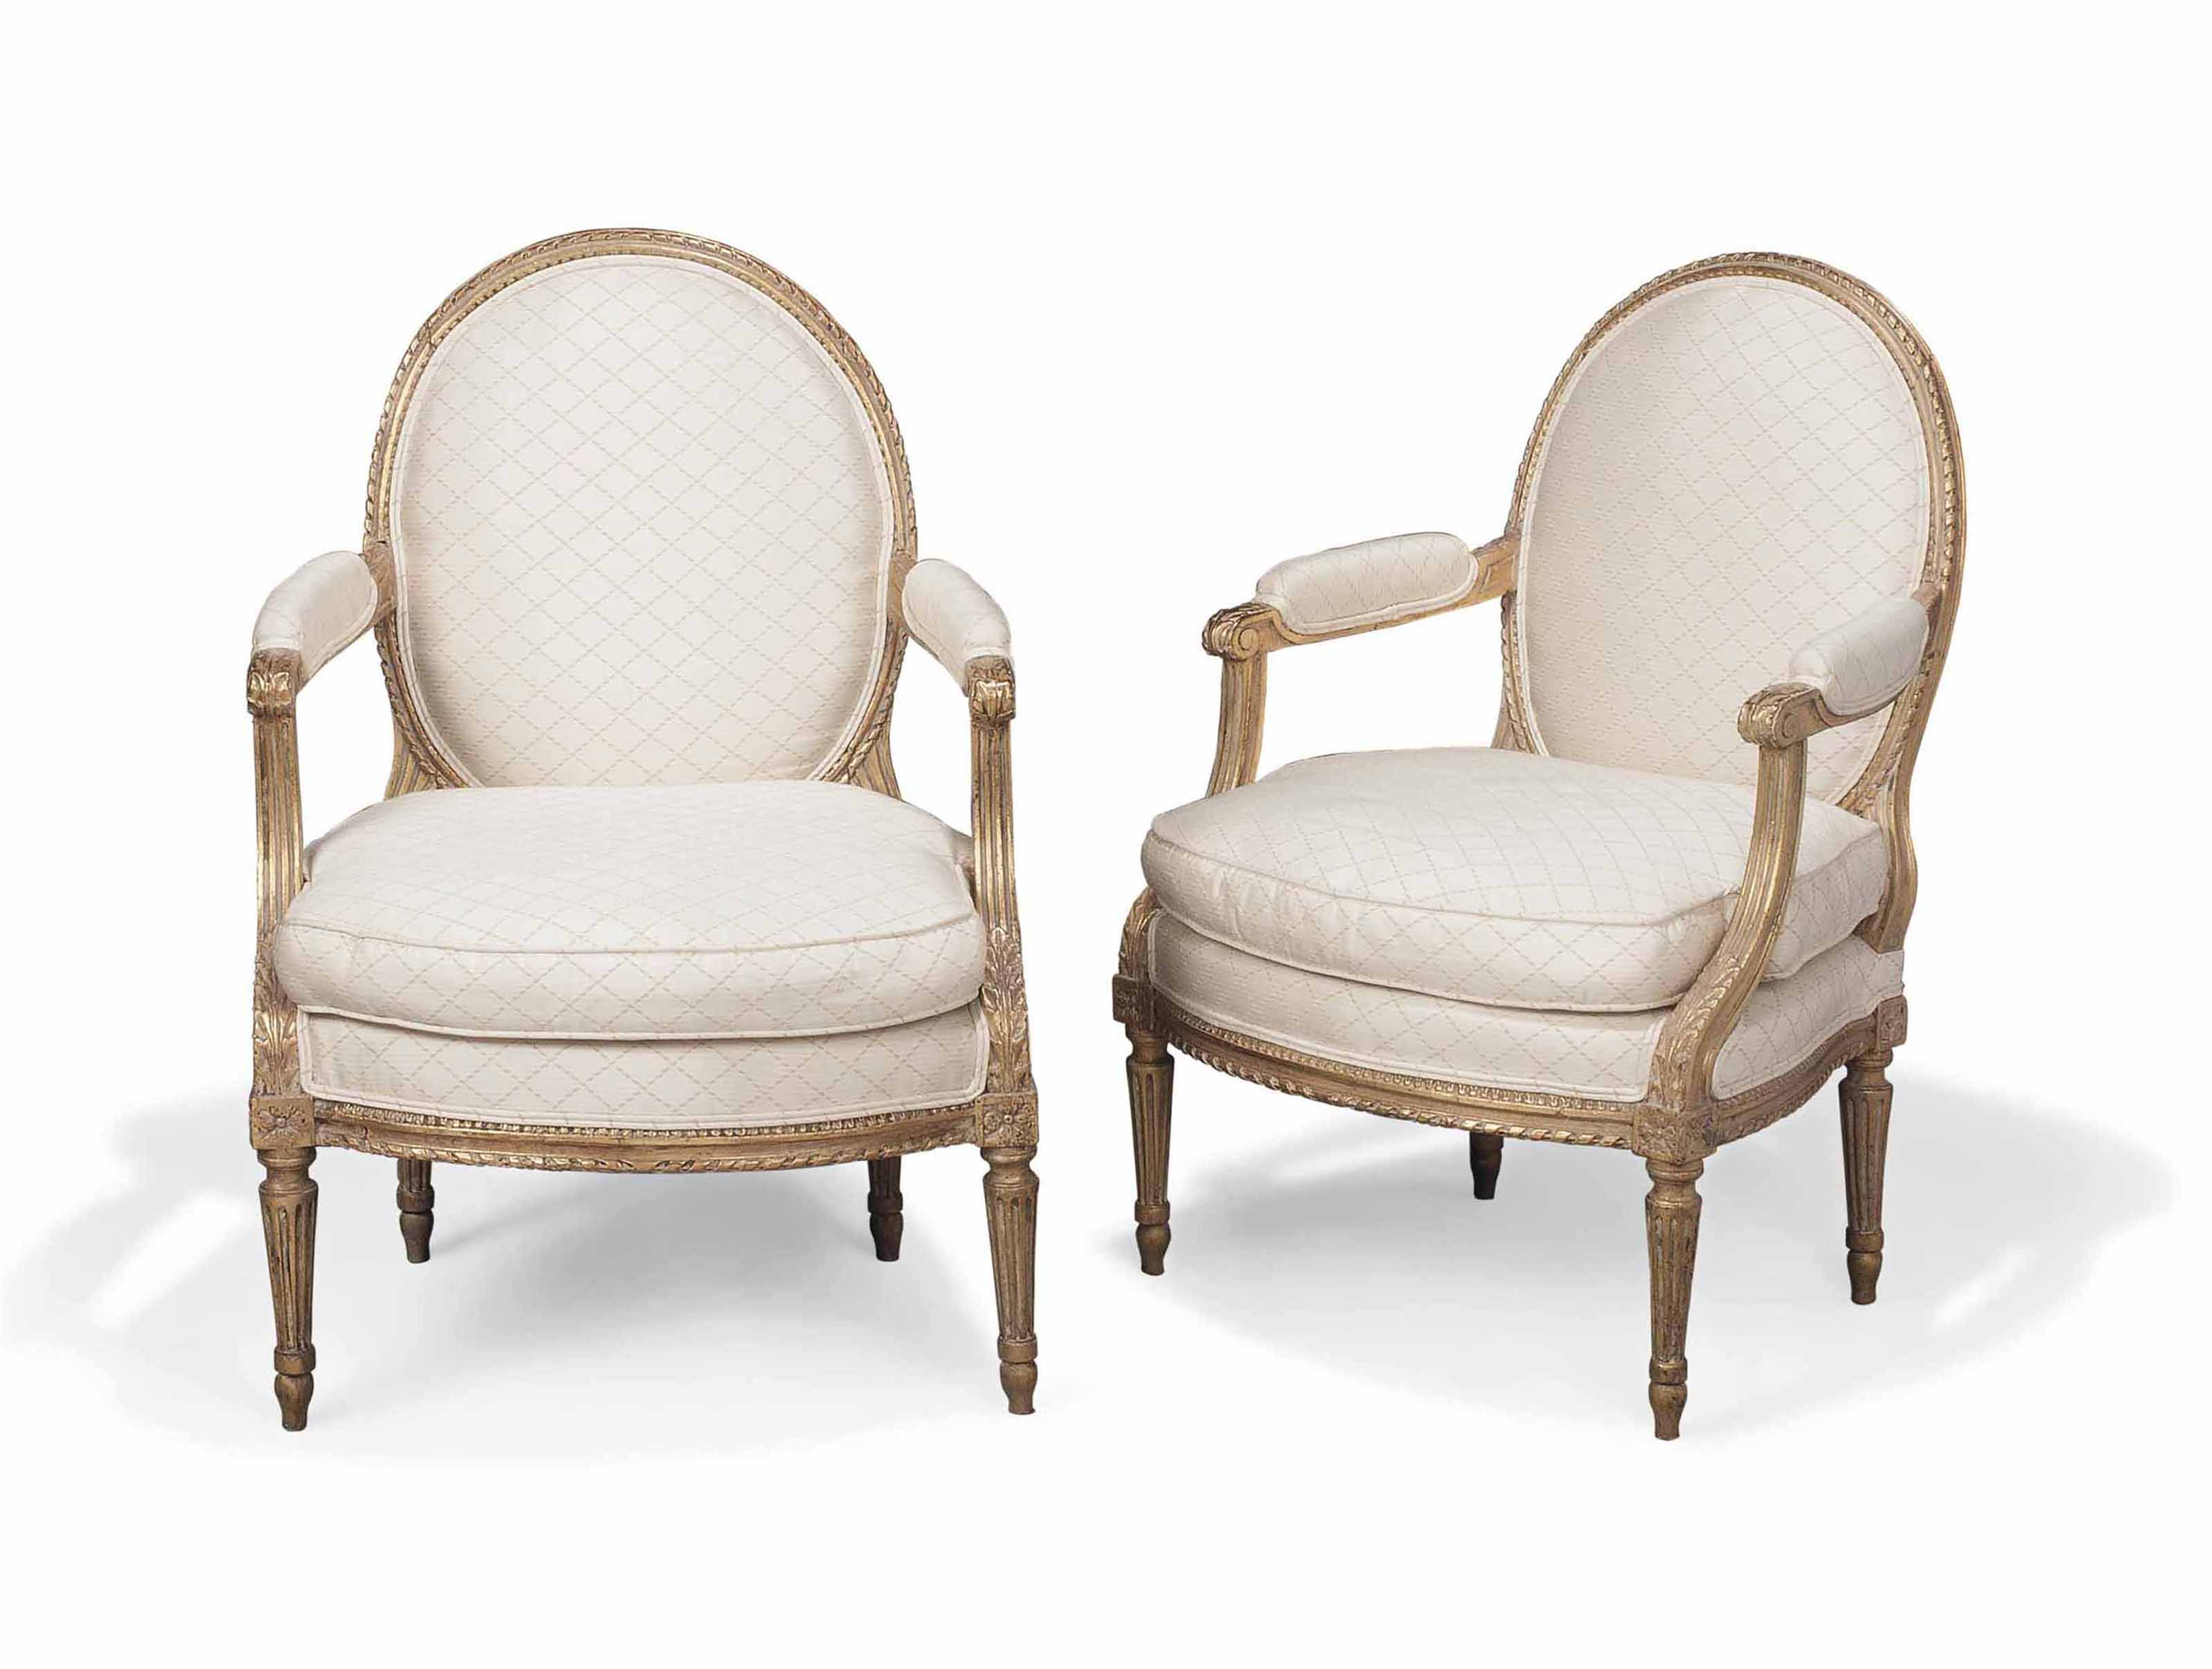 A PAIR OF LOUIS XVI GILTWOOD FAUTEUILS